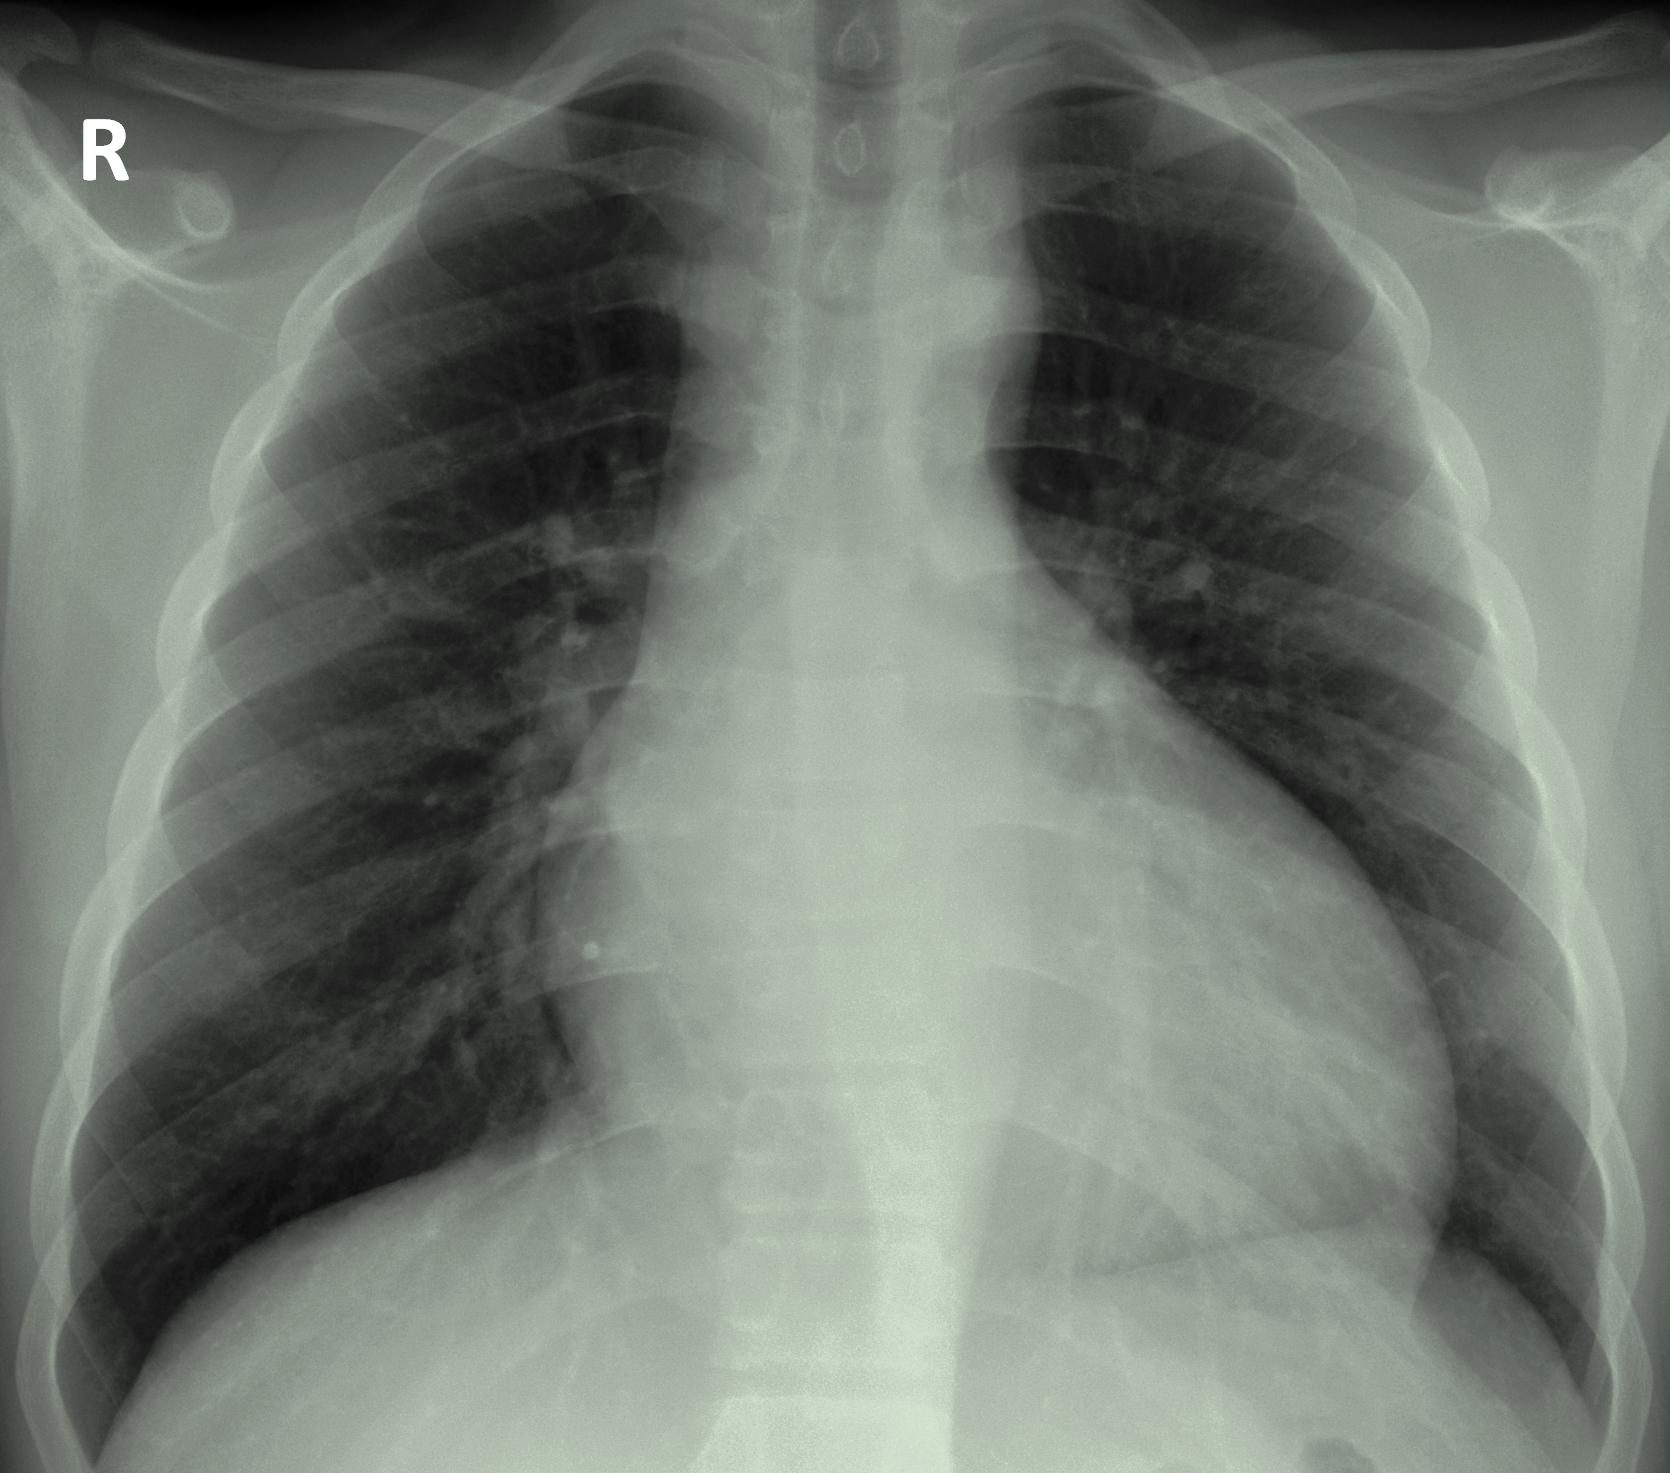 Aortic regurgitation x-ray.jpg